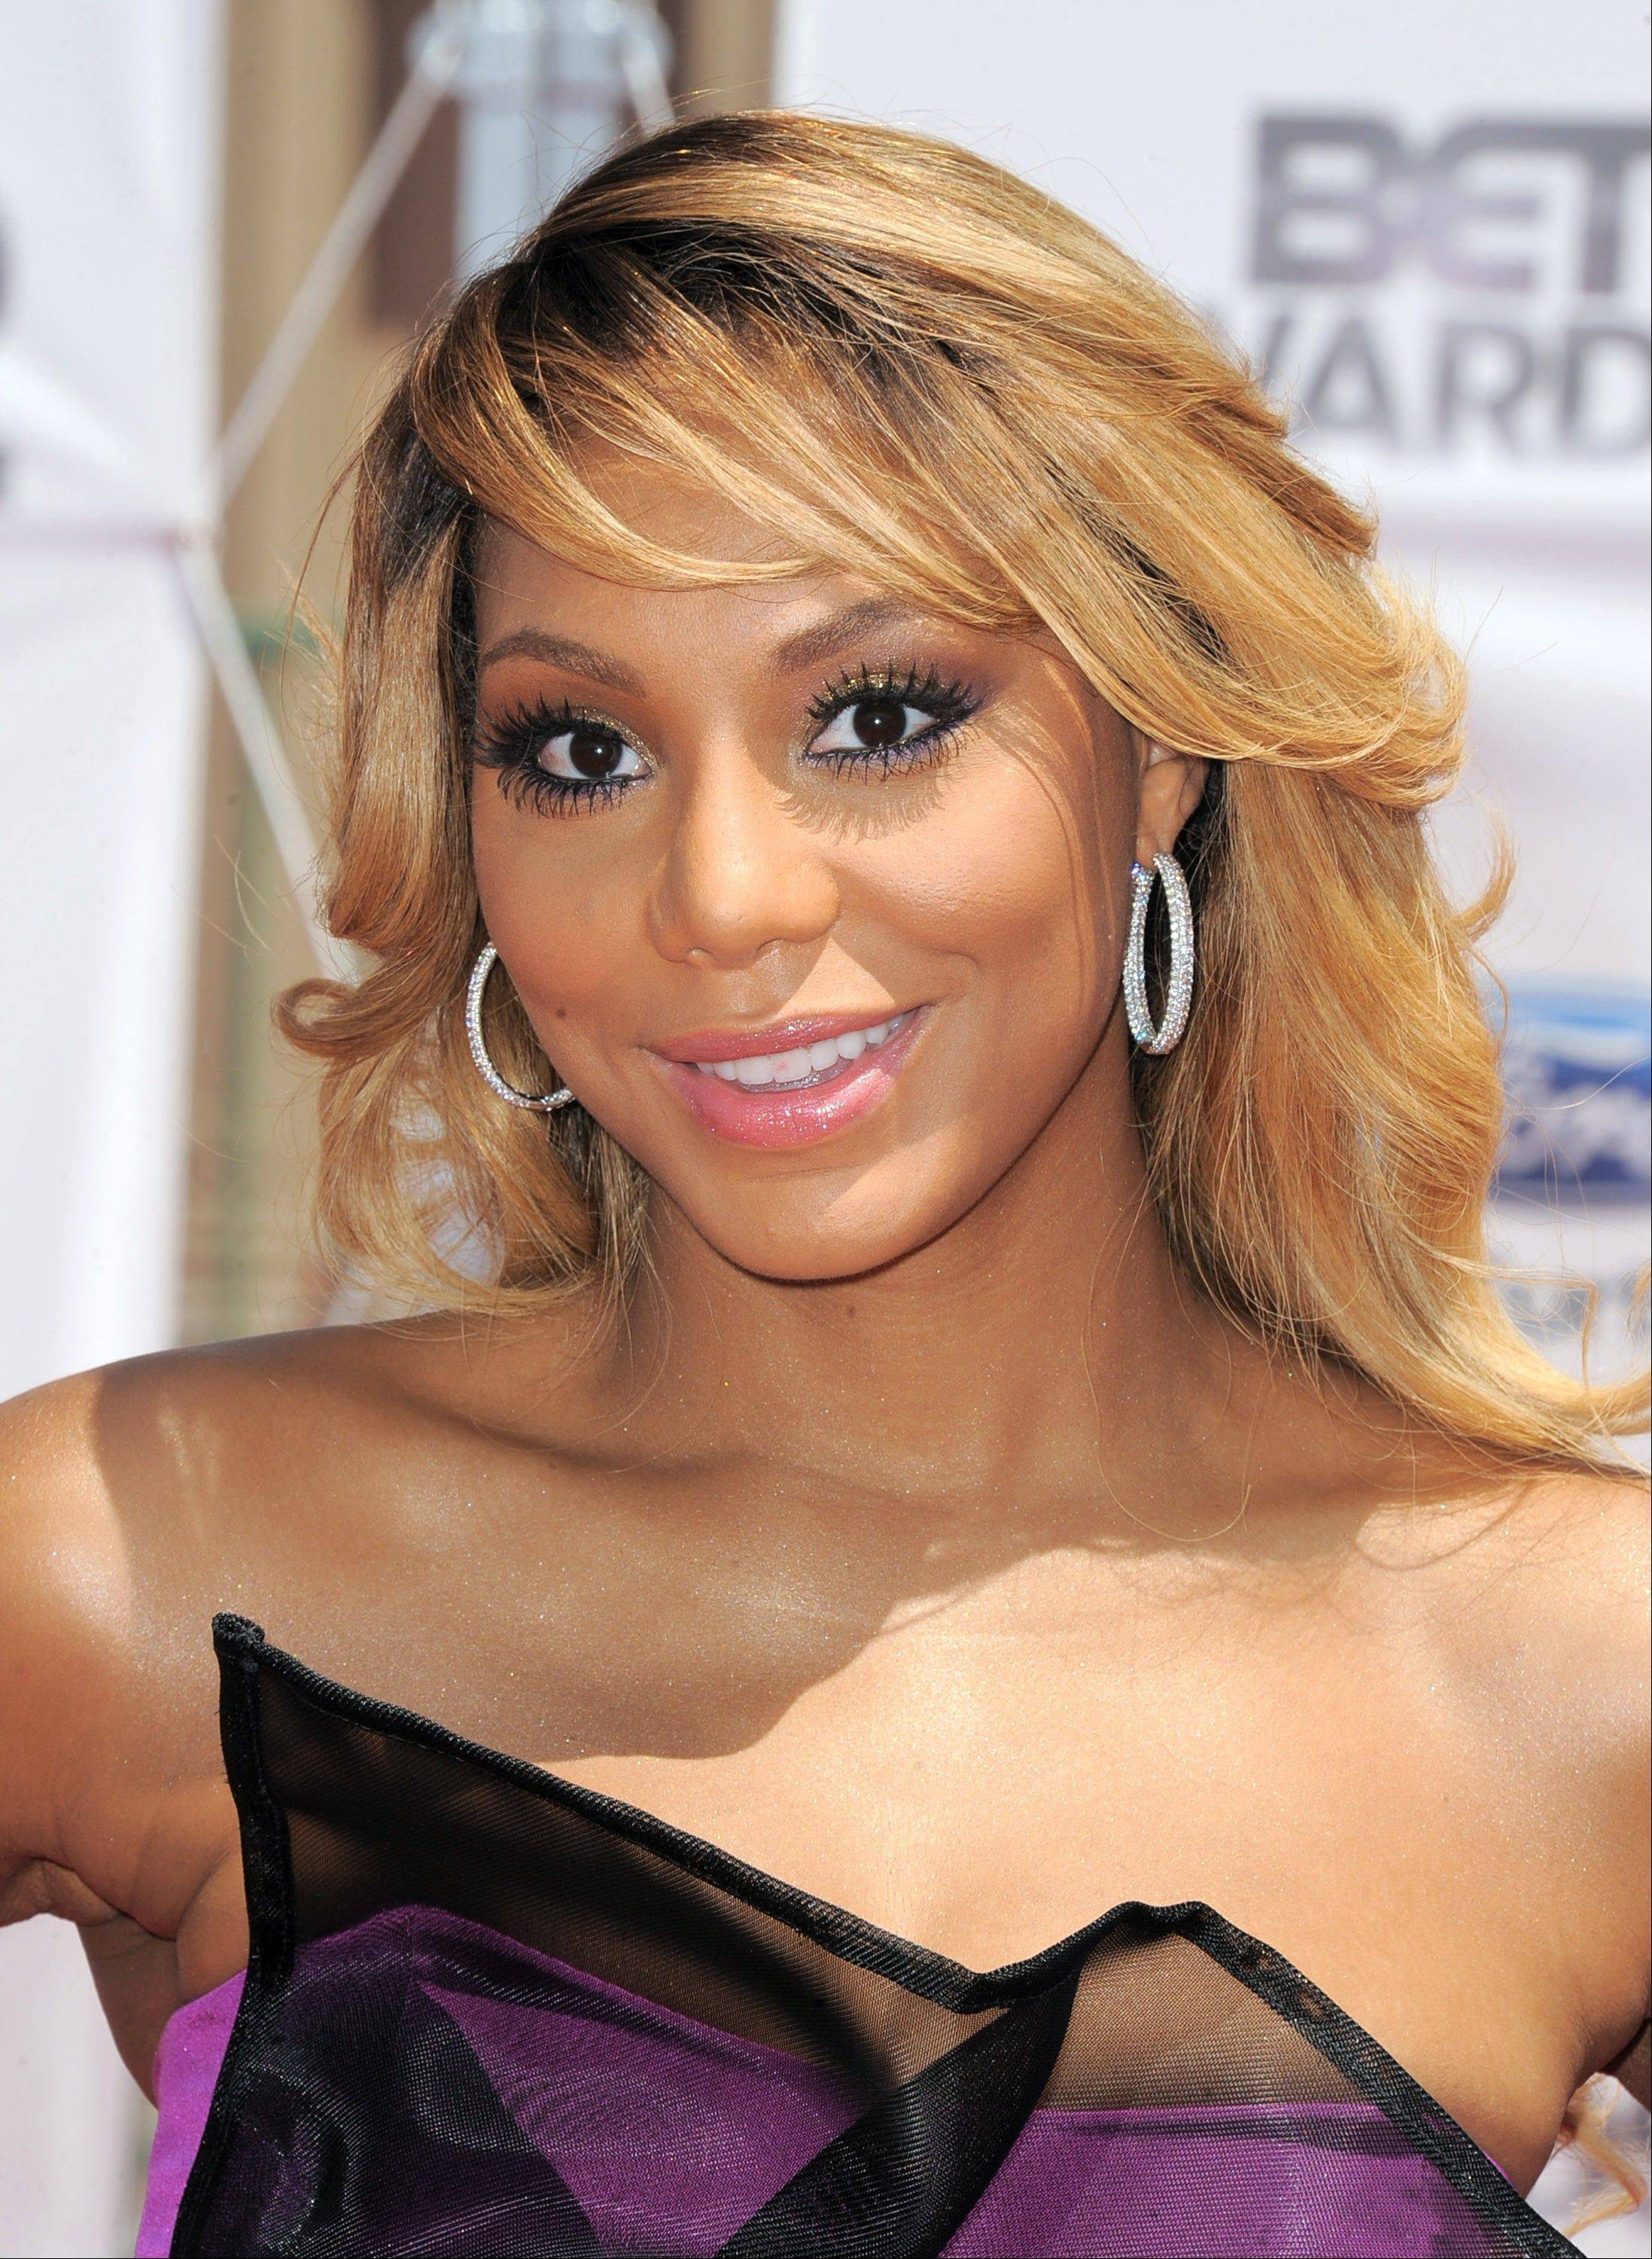 Tamar Braxton at the BET Awards in Los Angeles. Braxton is nominated for three honors at Sunday�s Grammy Awards, including best urban contemporary album for her first album in 13 years, �Love and War.� The title track is also nominated for best R&B song and R&B performance.